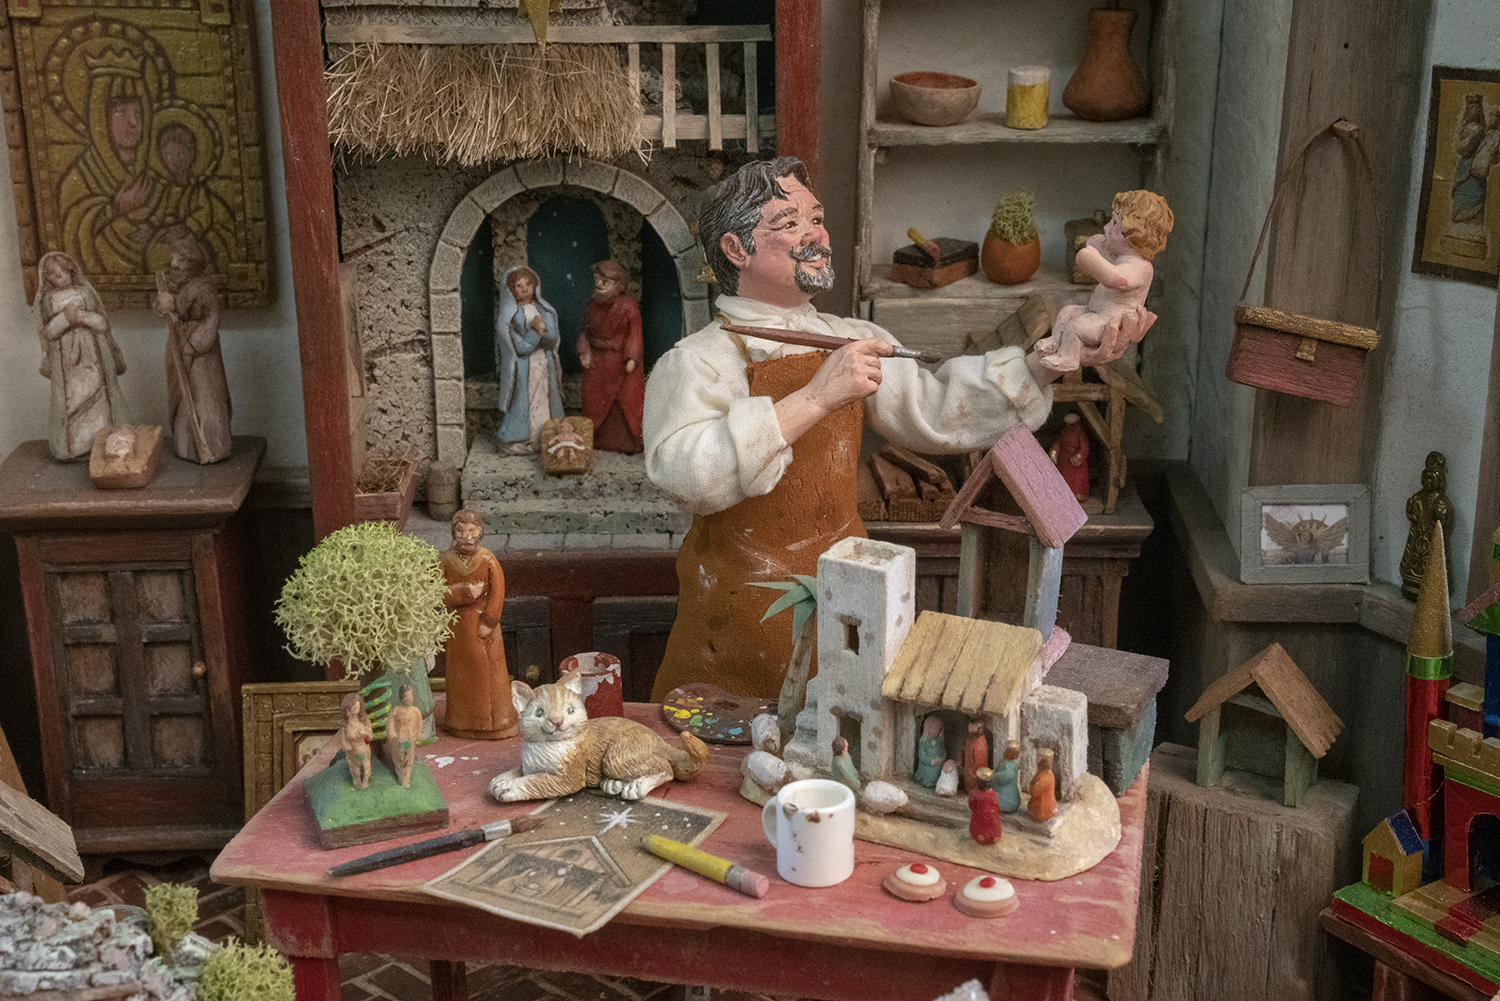 Figure 7: The Nativity artist featured in this scene, made by Karen Loccisano, bears a striking resemblance to her husband, R. Michael Palan.